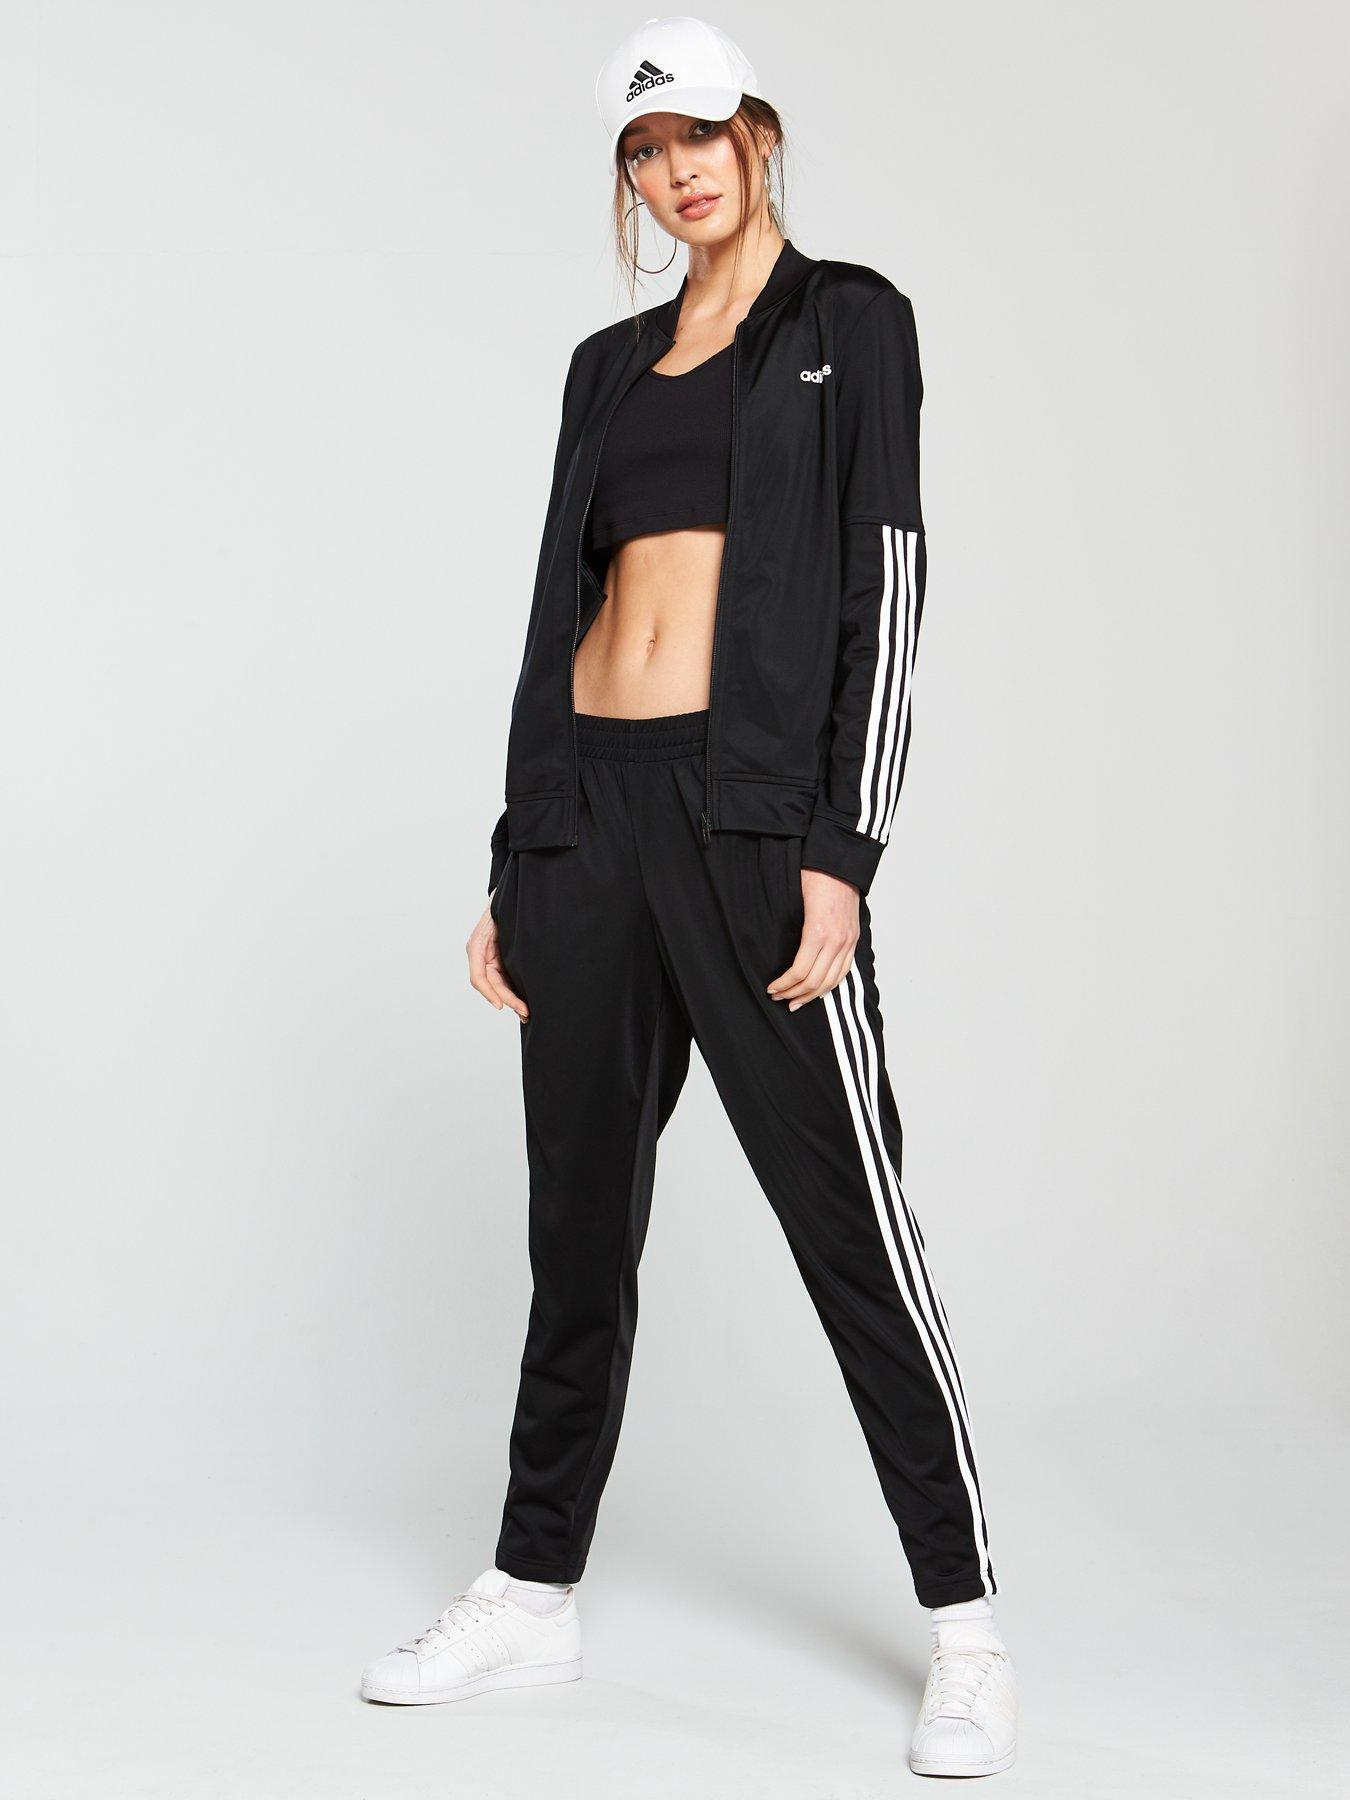 adidas tracksuit womans